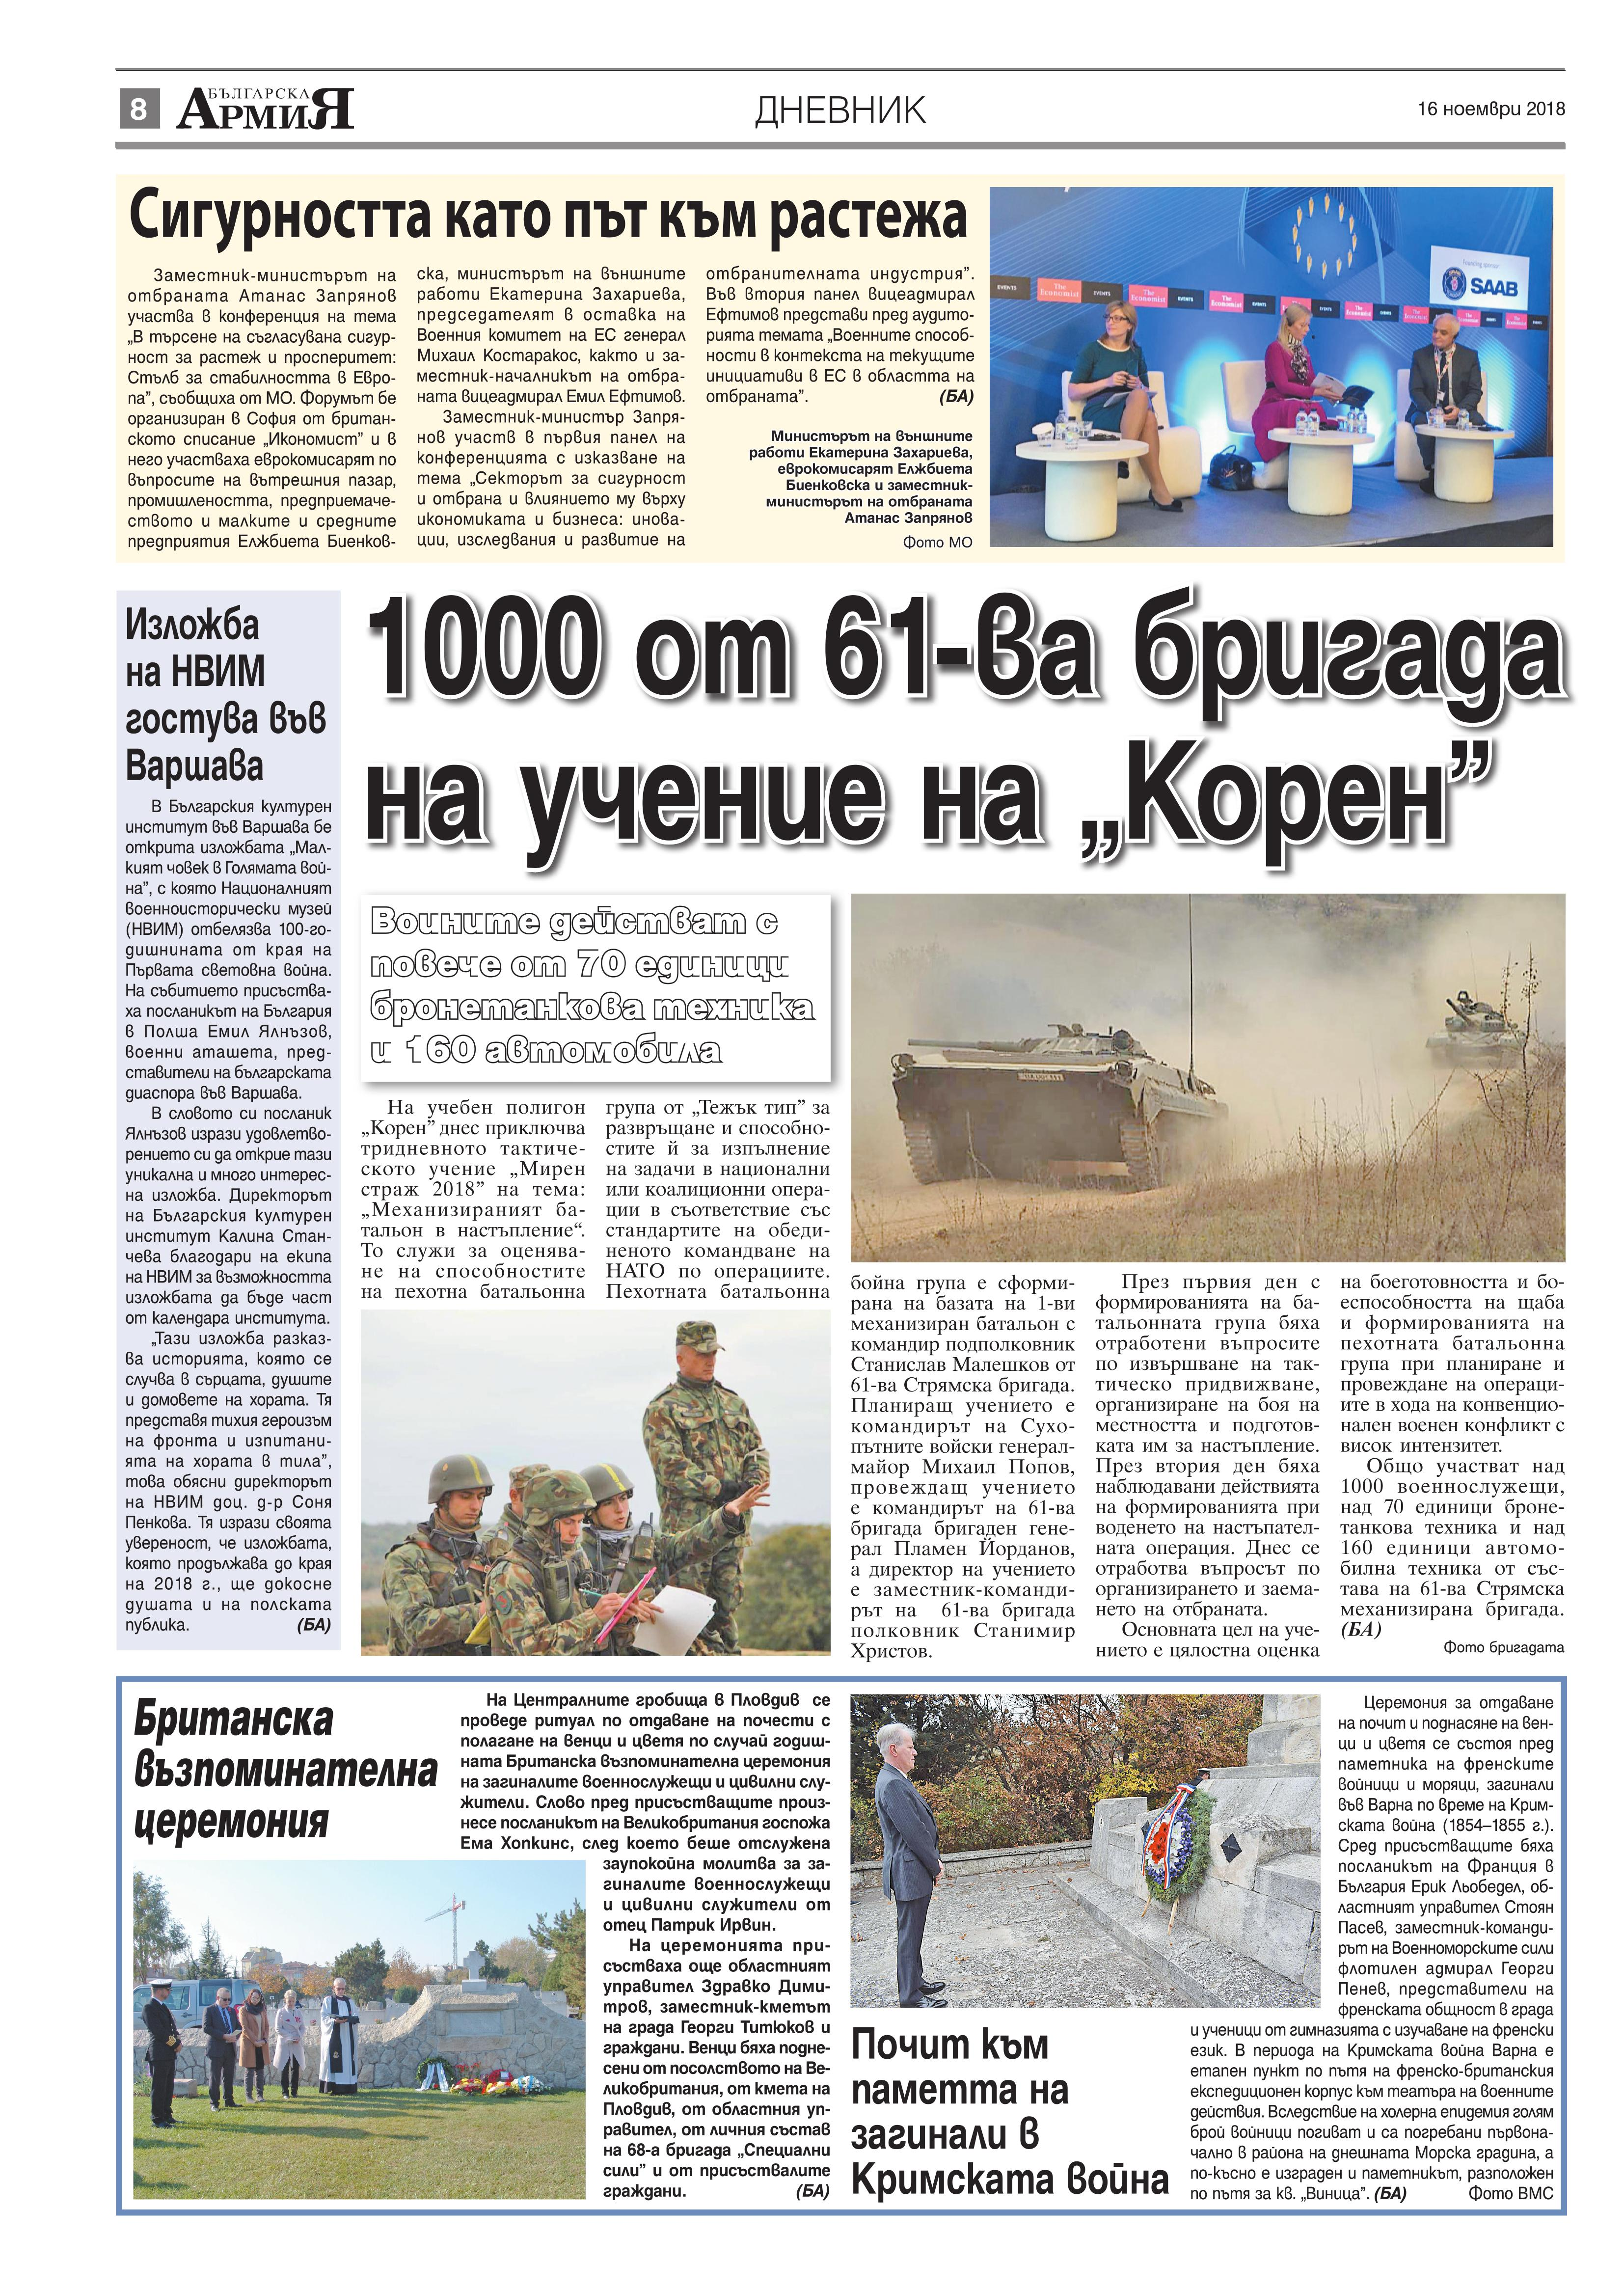 https://armymedia.bg/wp-content/uploads/2015/06/08.page1_-70.jpg